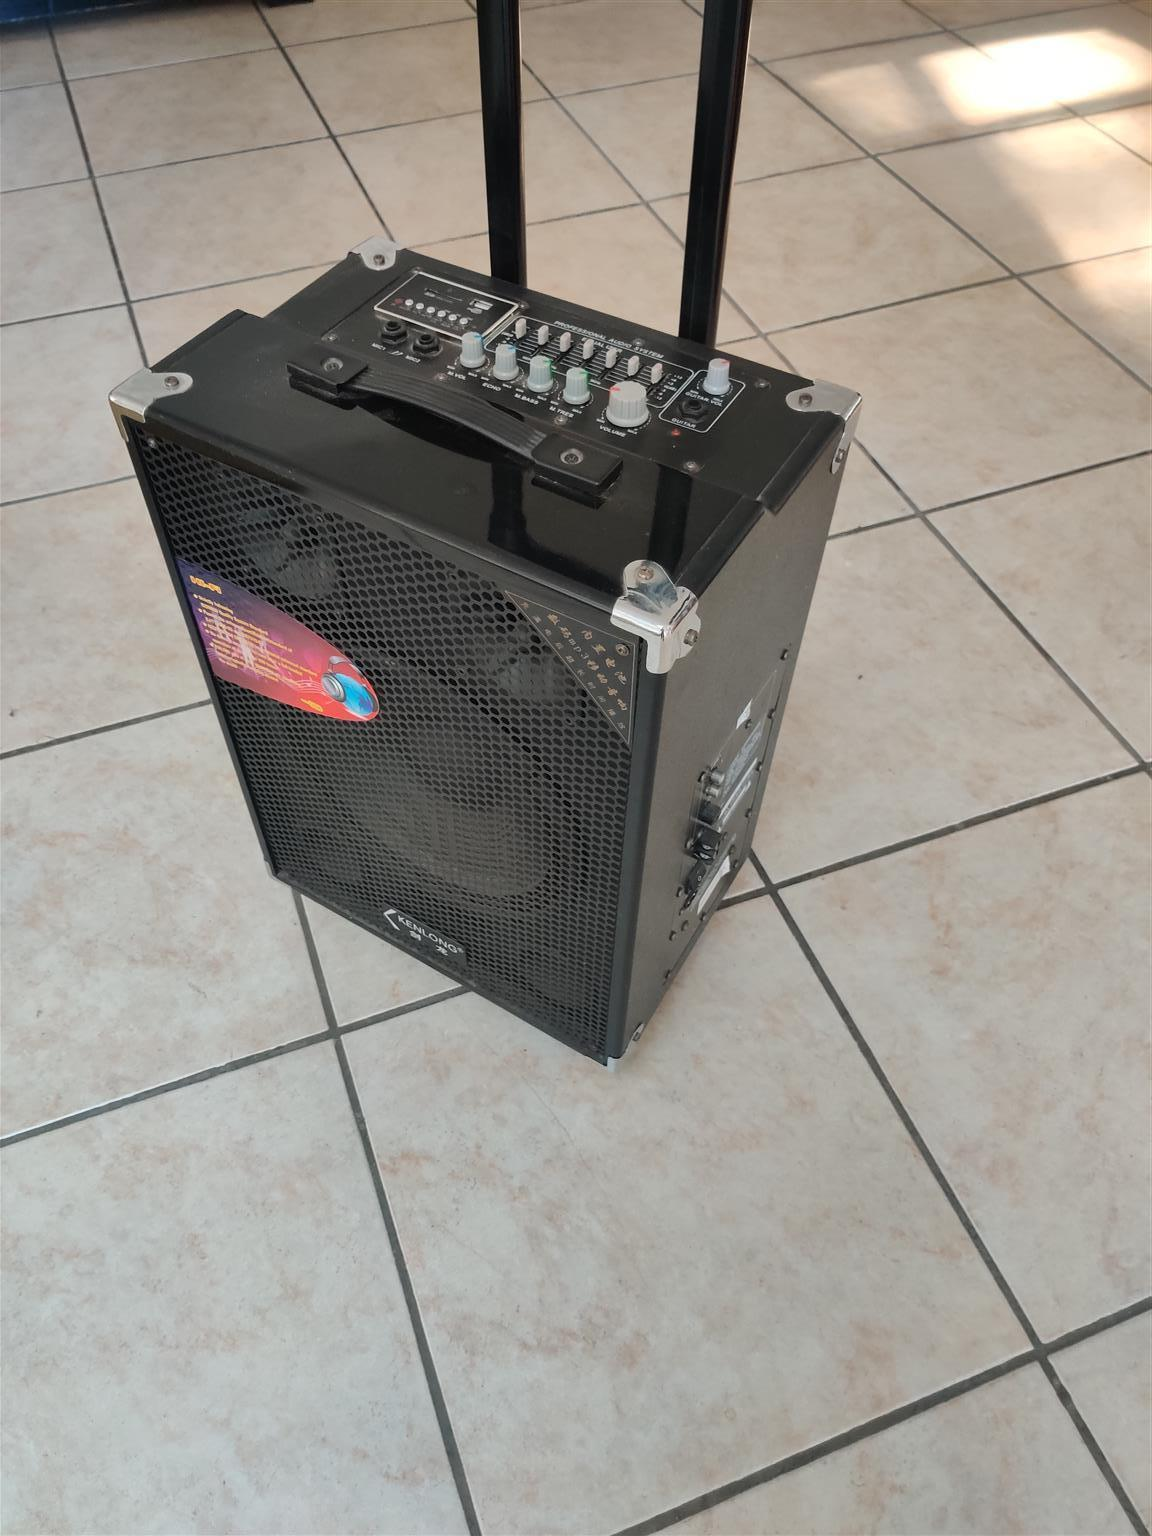 Multi-Purpose Professional Trolley Speaker with build-in EQ and multiple inputs.